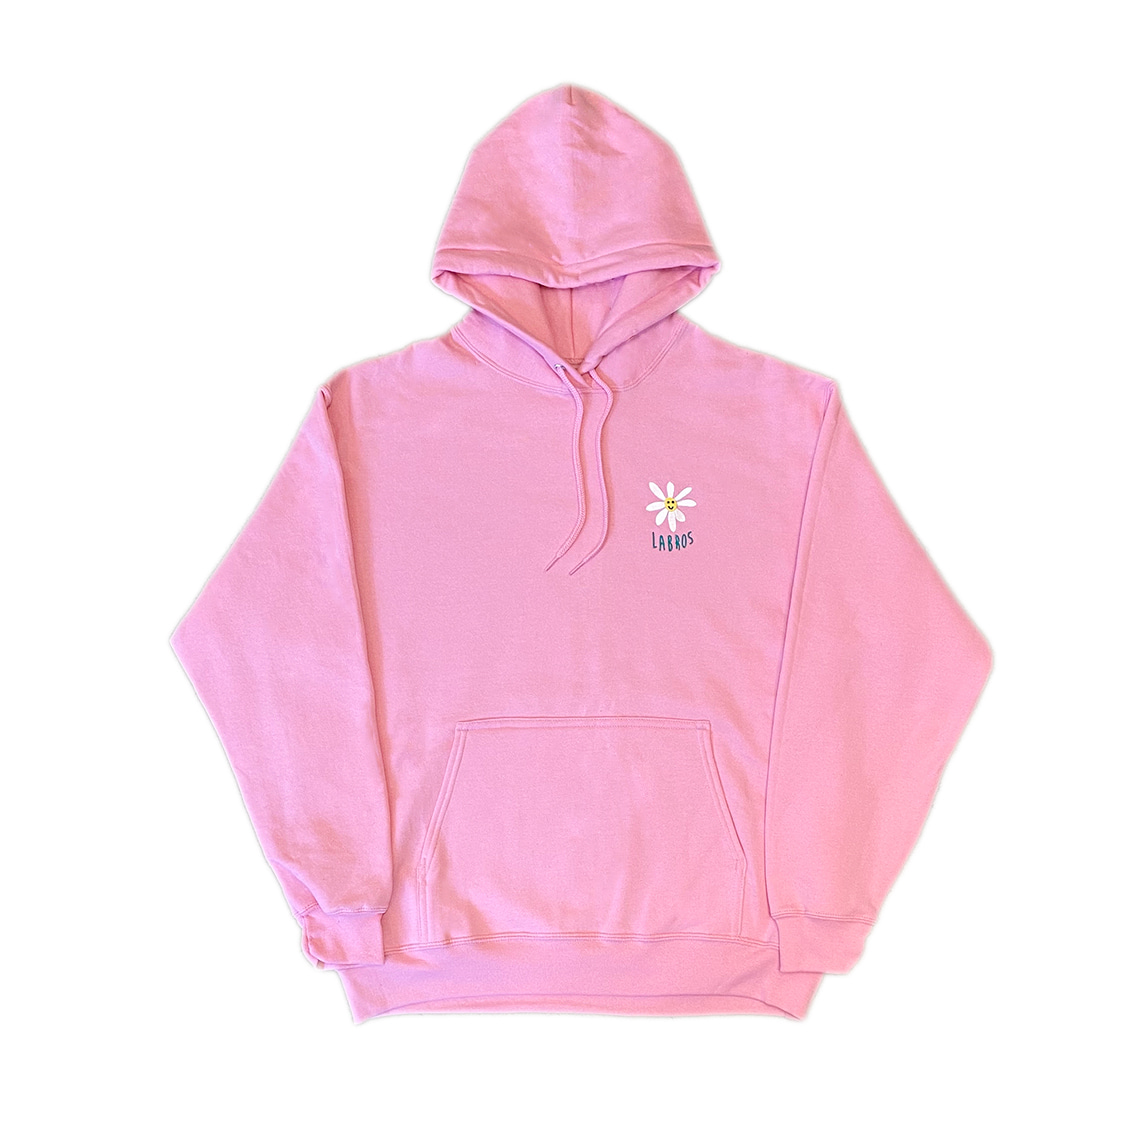 Daisy Hoodie (Pink)